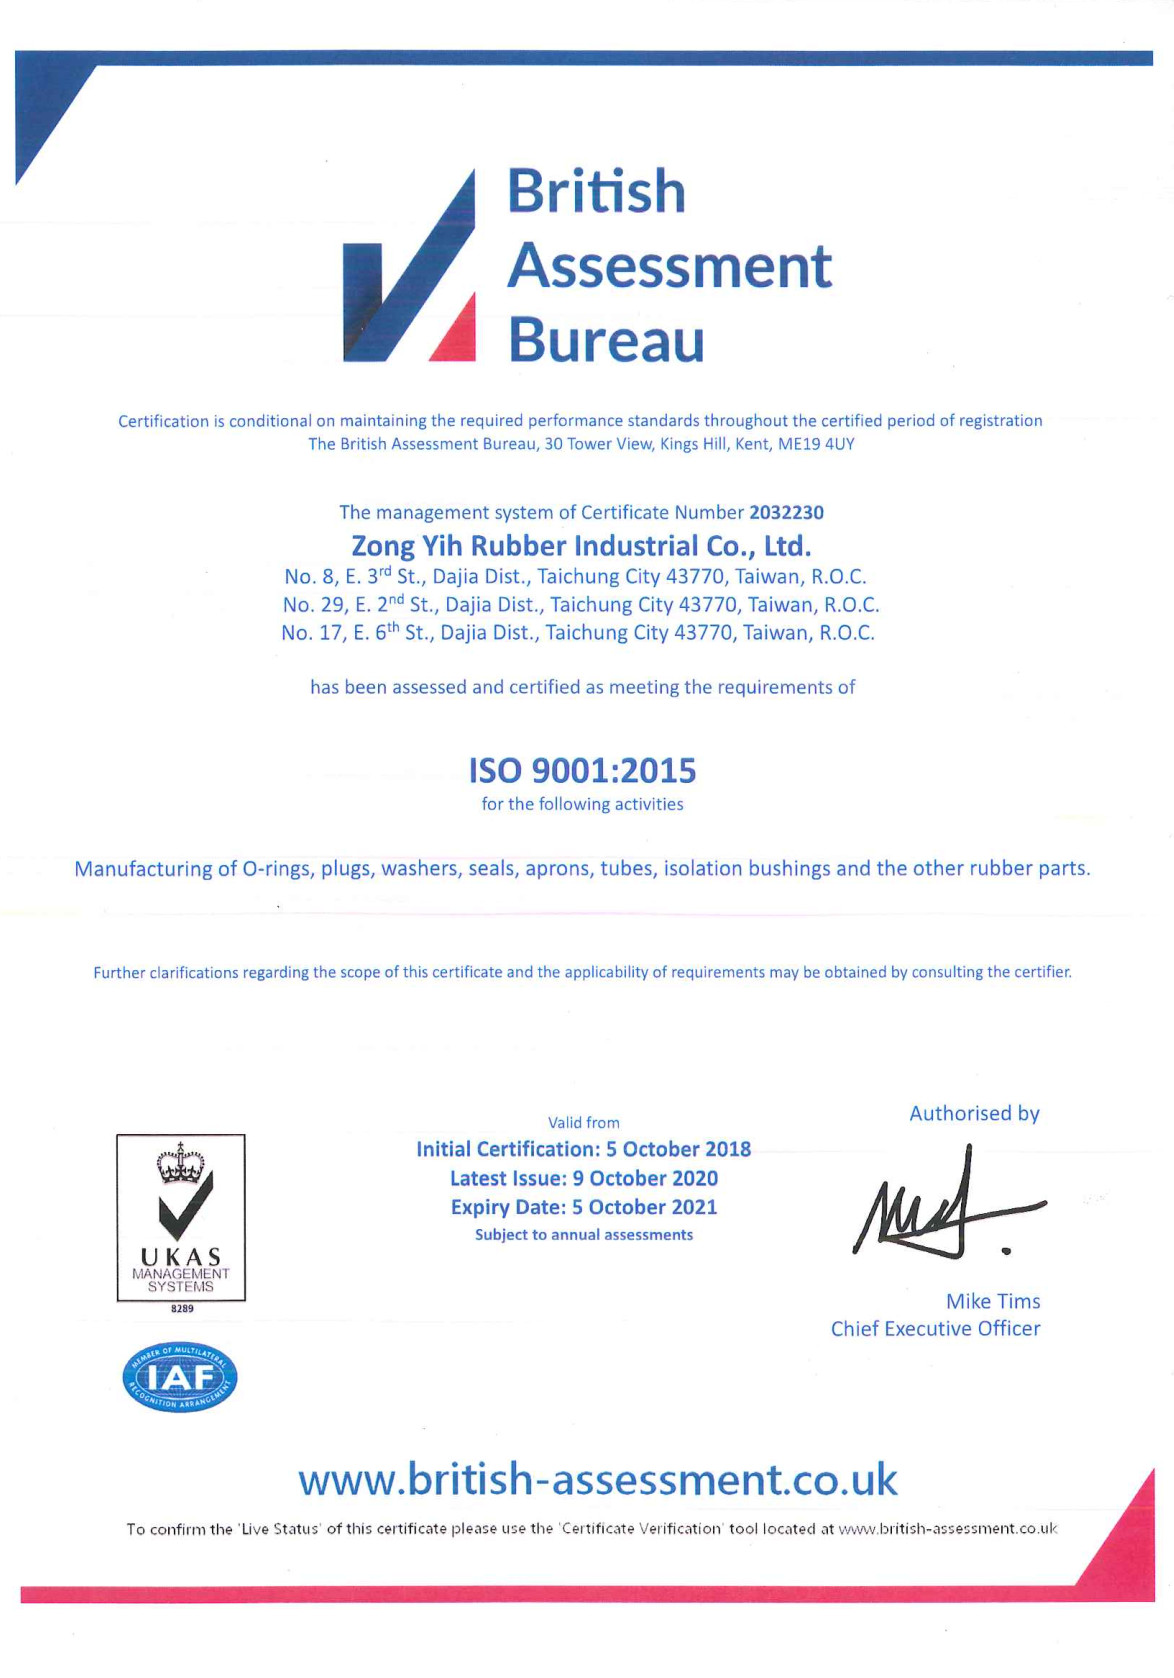 British Assessment Bureau Rubber Parts Certificate